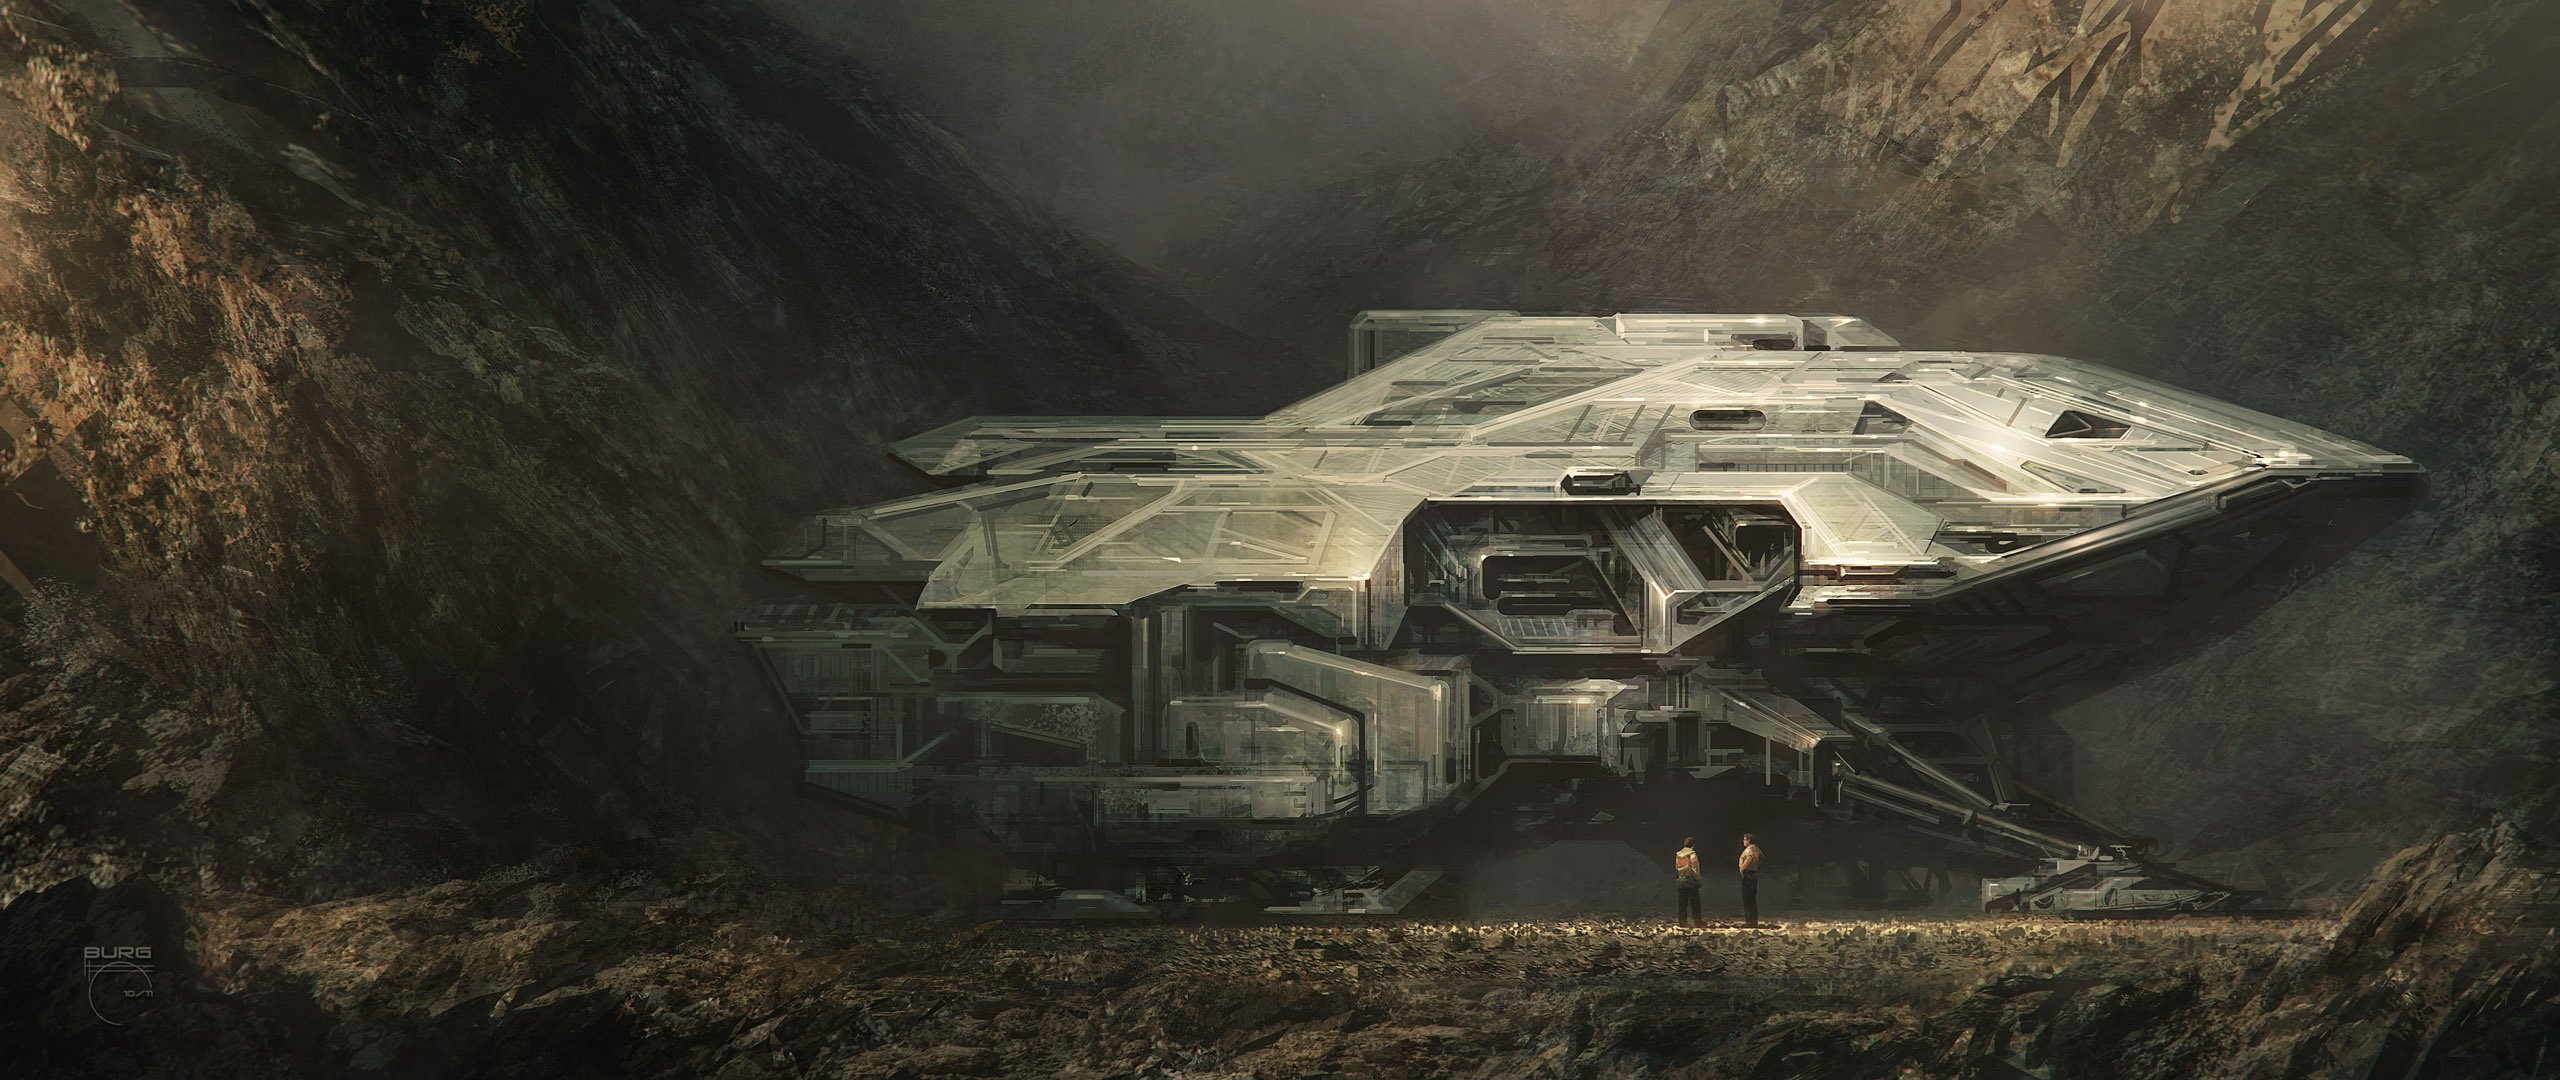 Download Alpha Coders Wallpaper Abyss Sci Fi Spaceship 264905 2560x1080